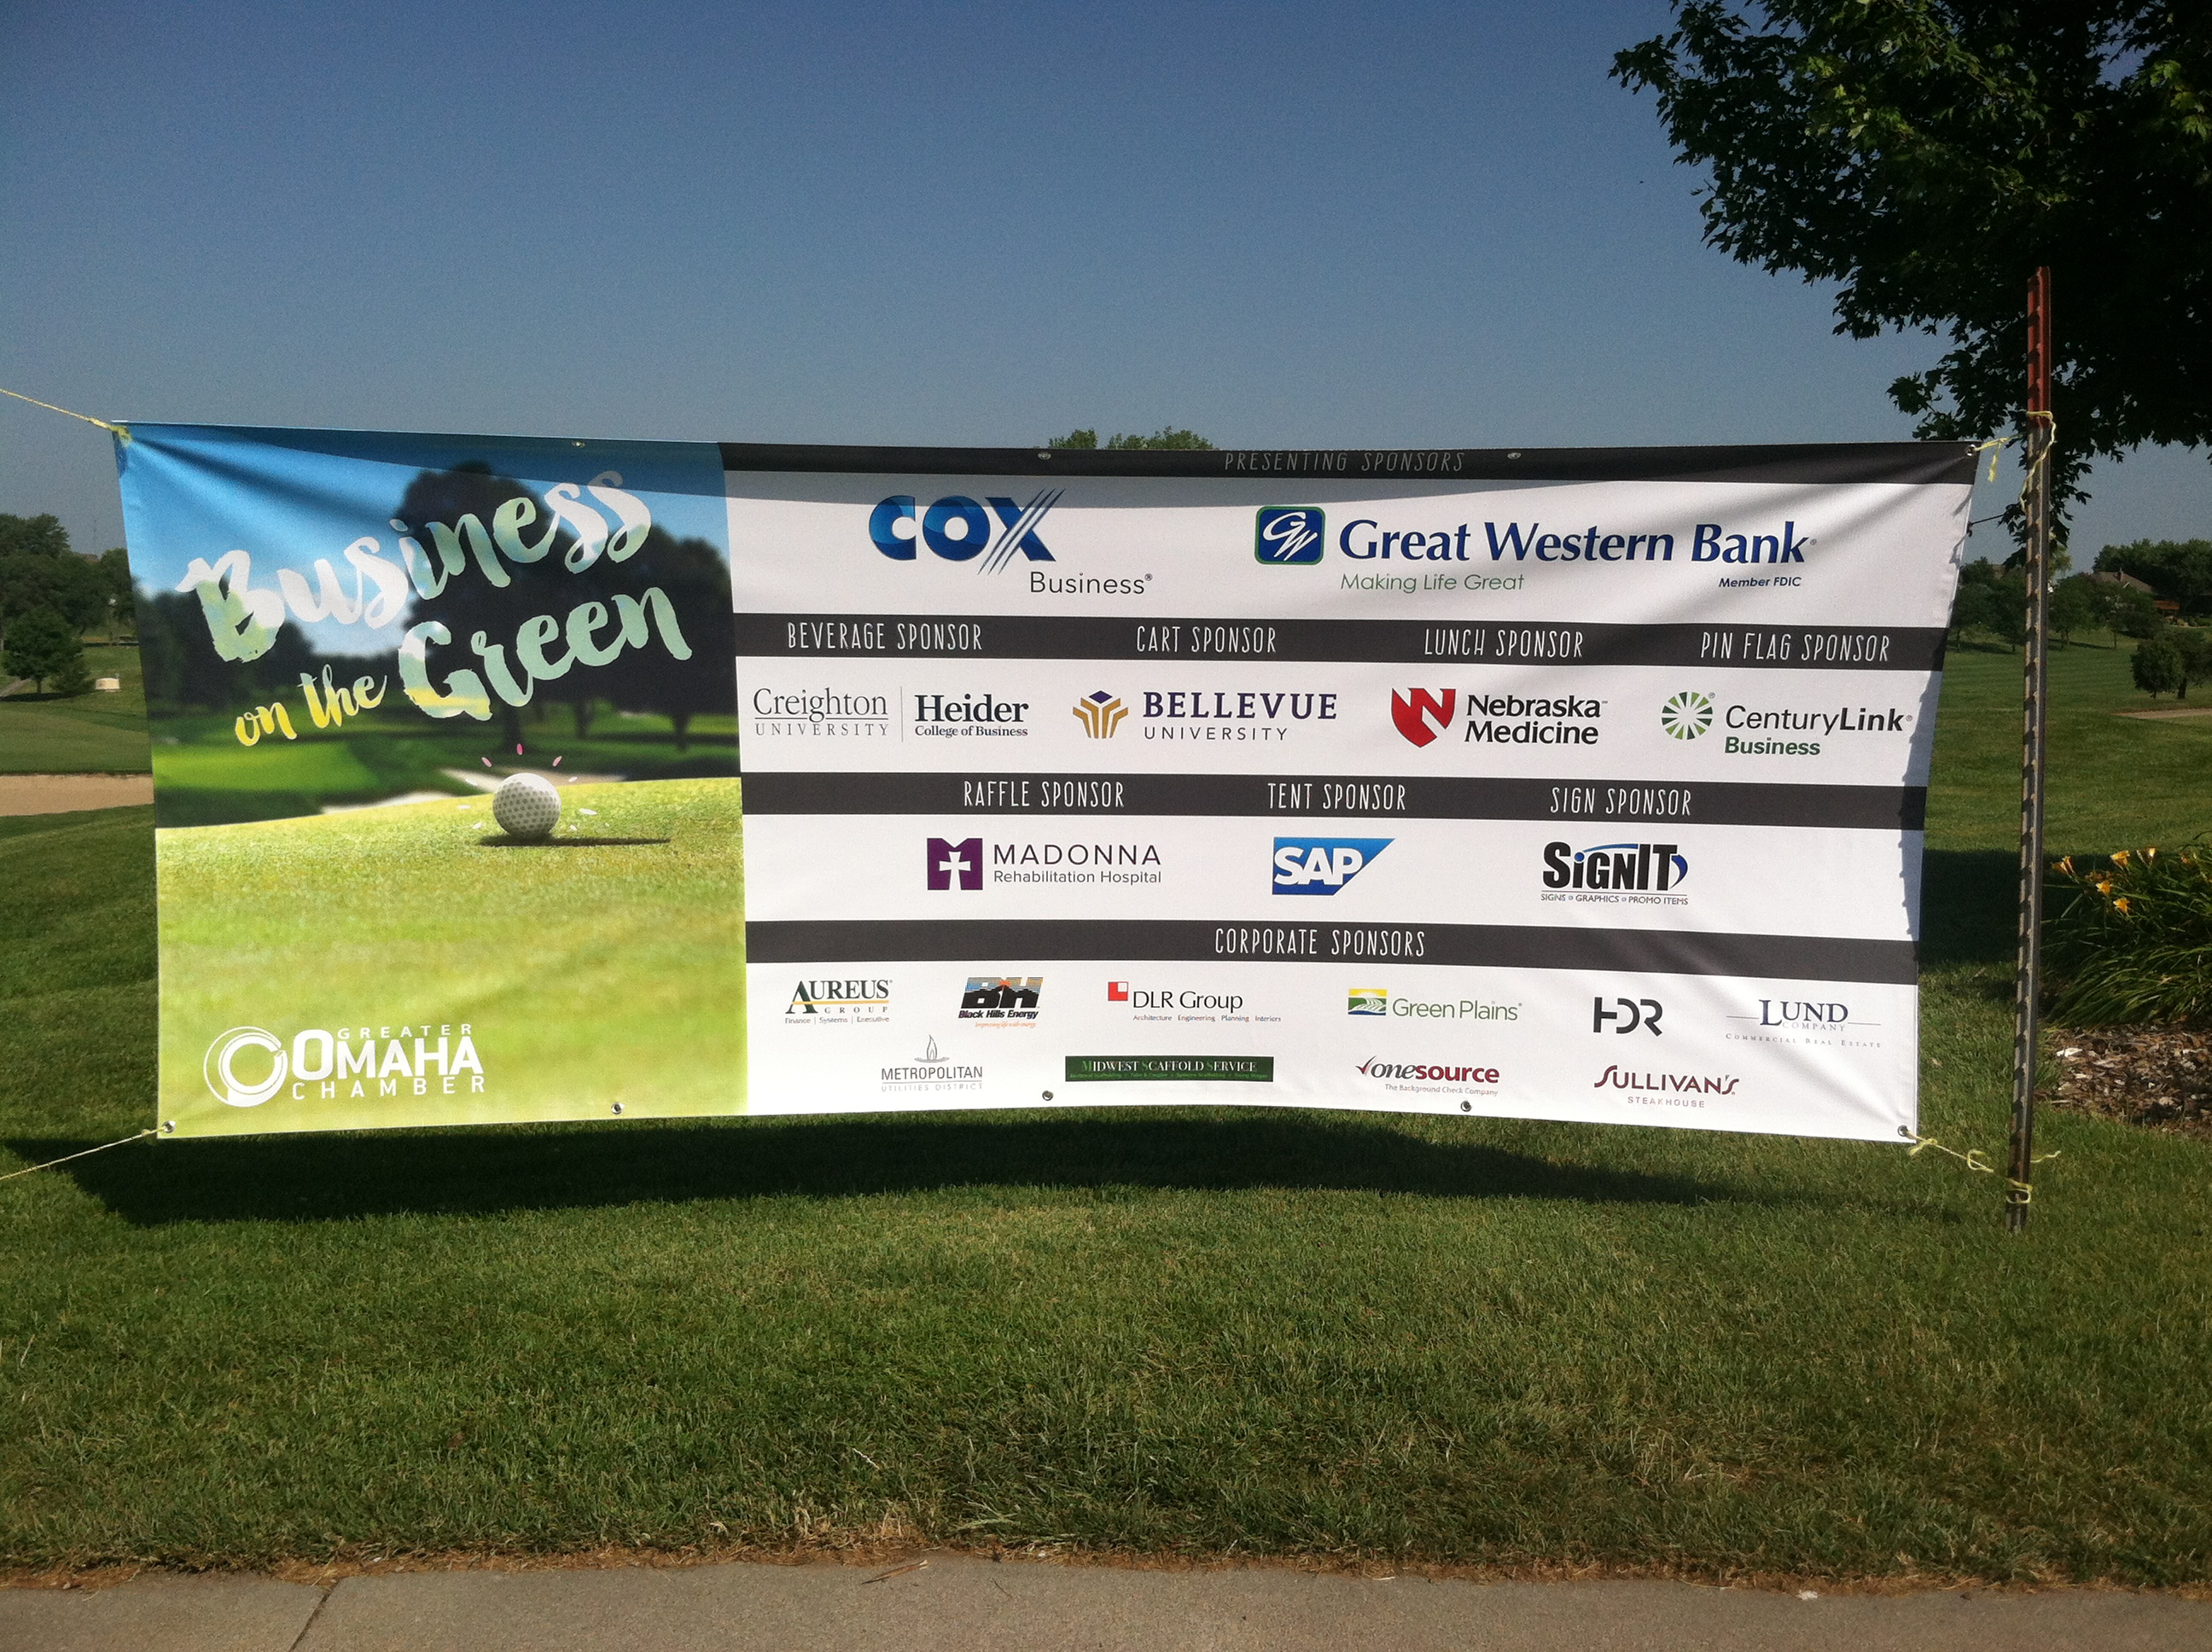 Many thanks to the generous BOTG sponsors.